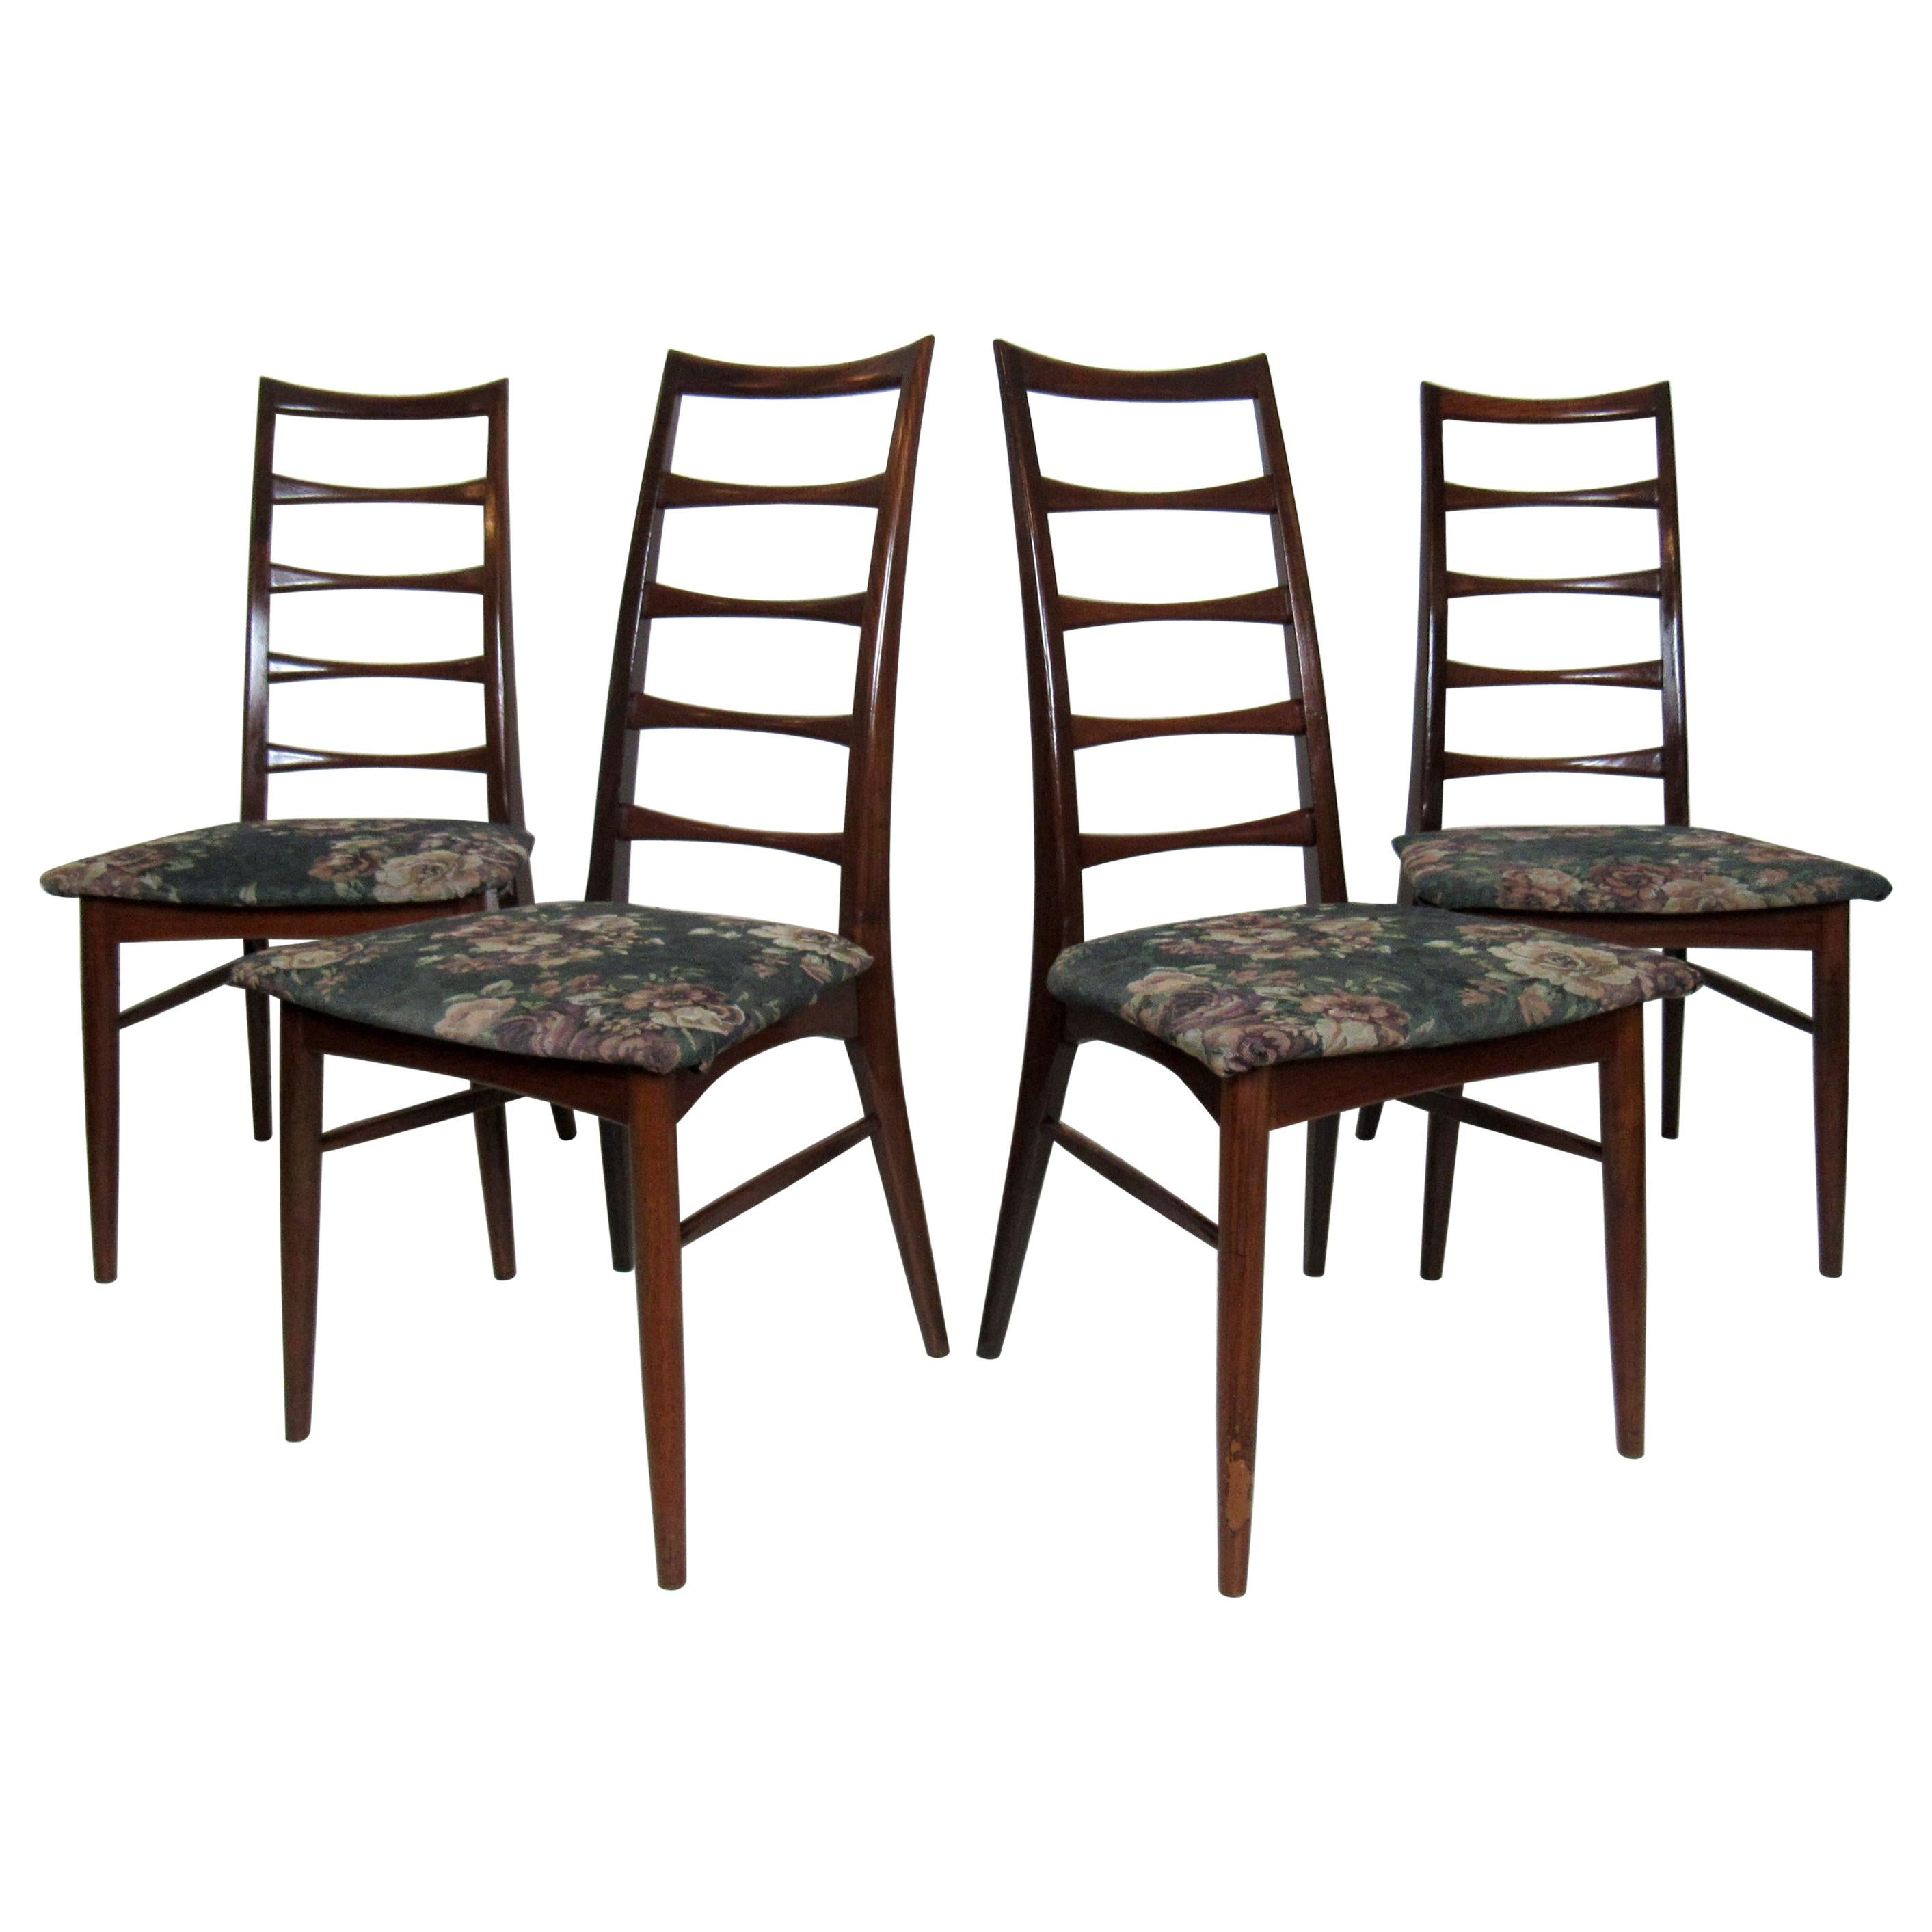 Set of Four Modern Dining Chairs